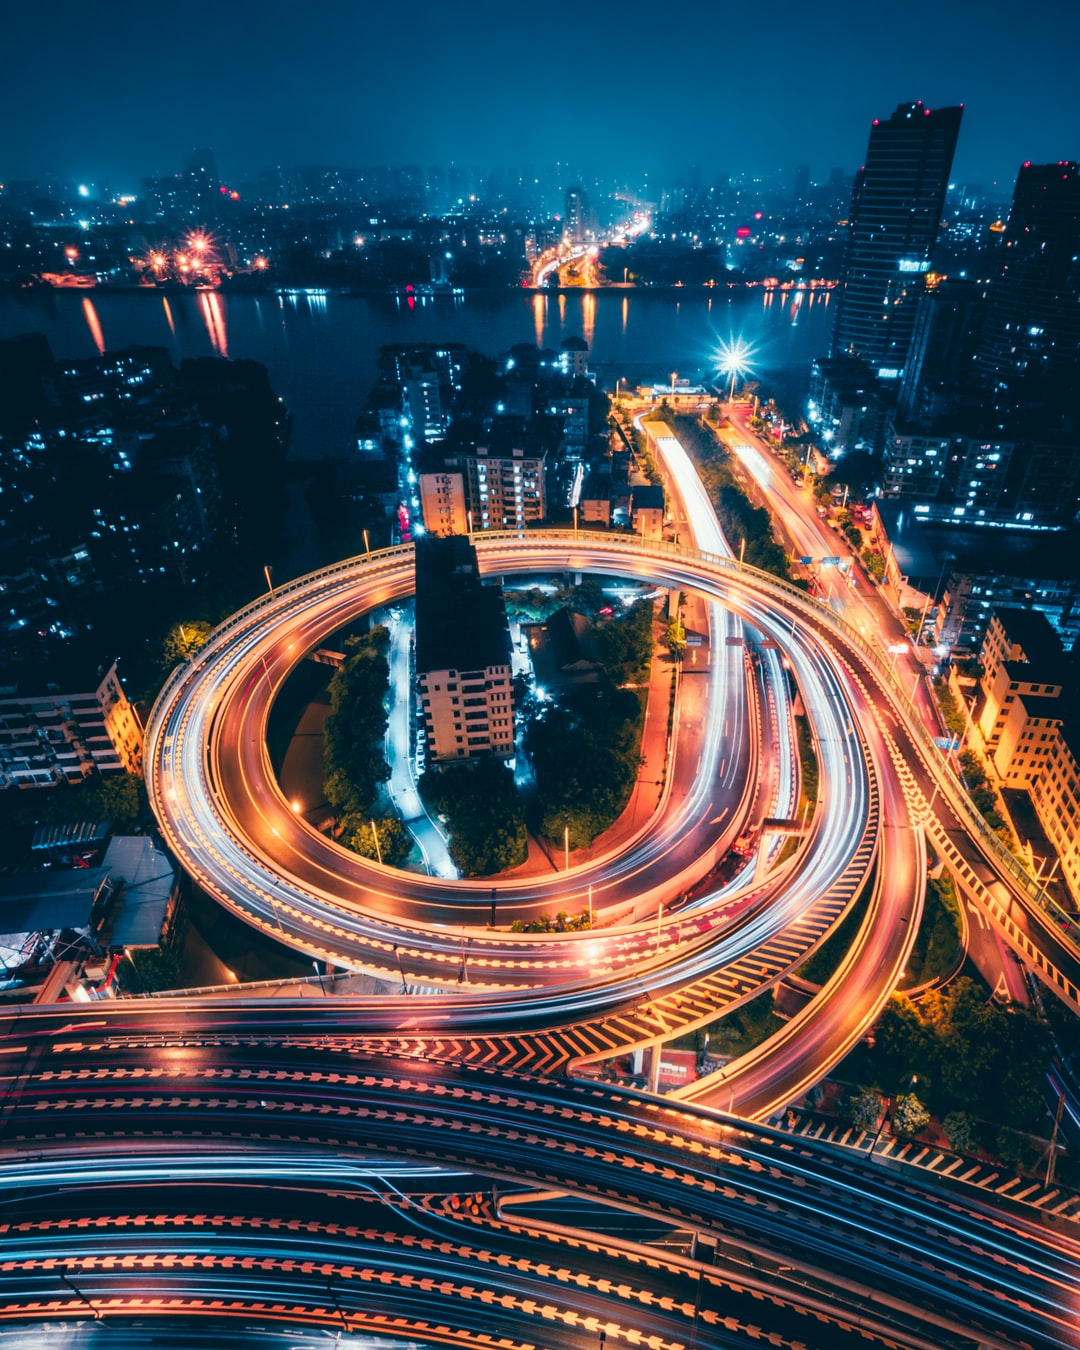 500+ Long Exposure Pictures [HD] | Download Free Images on ...